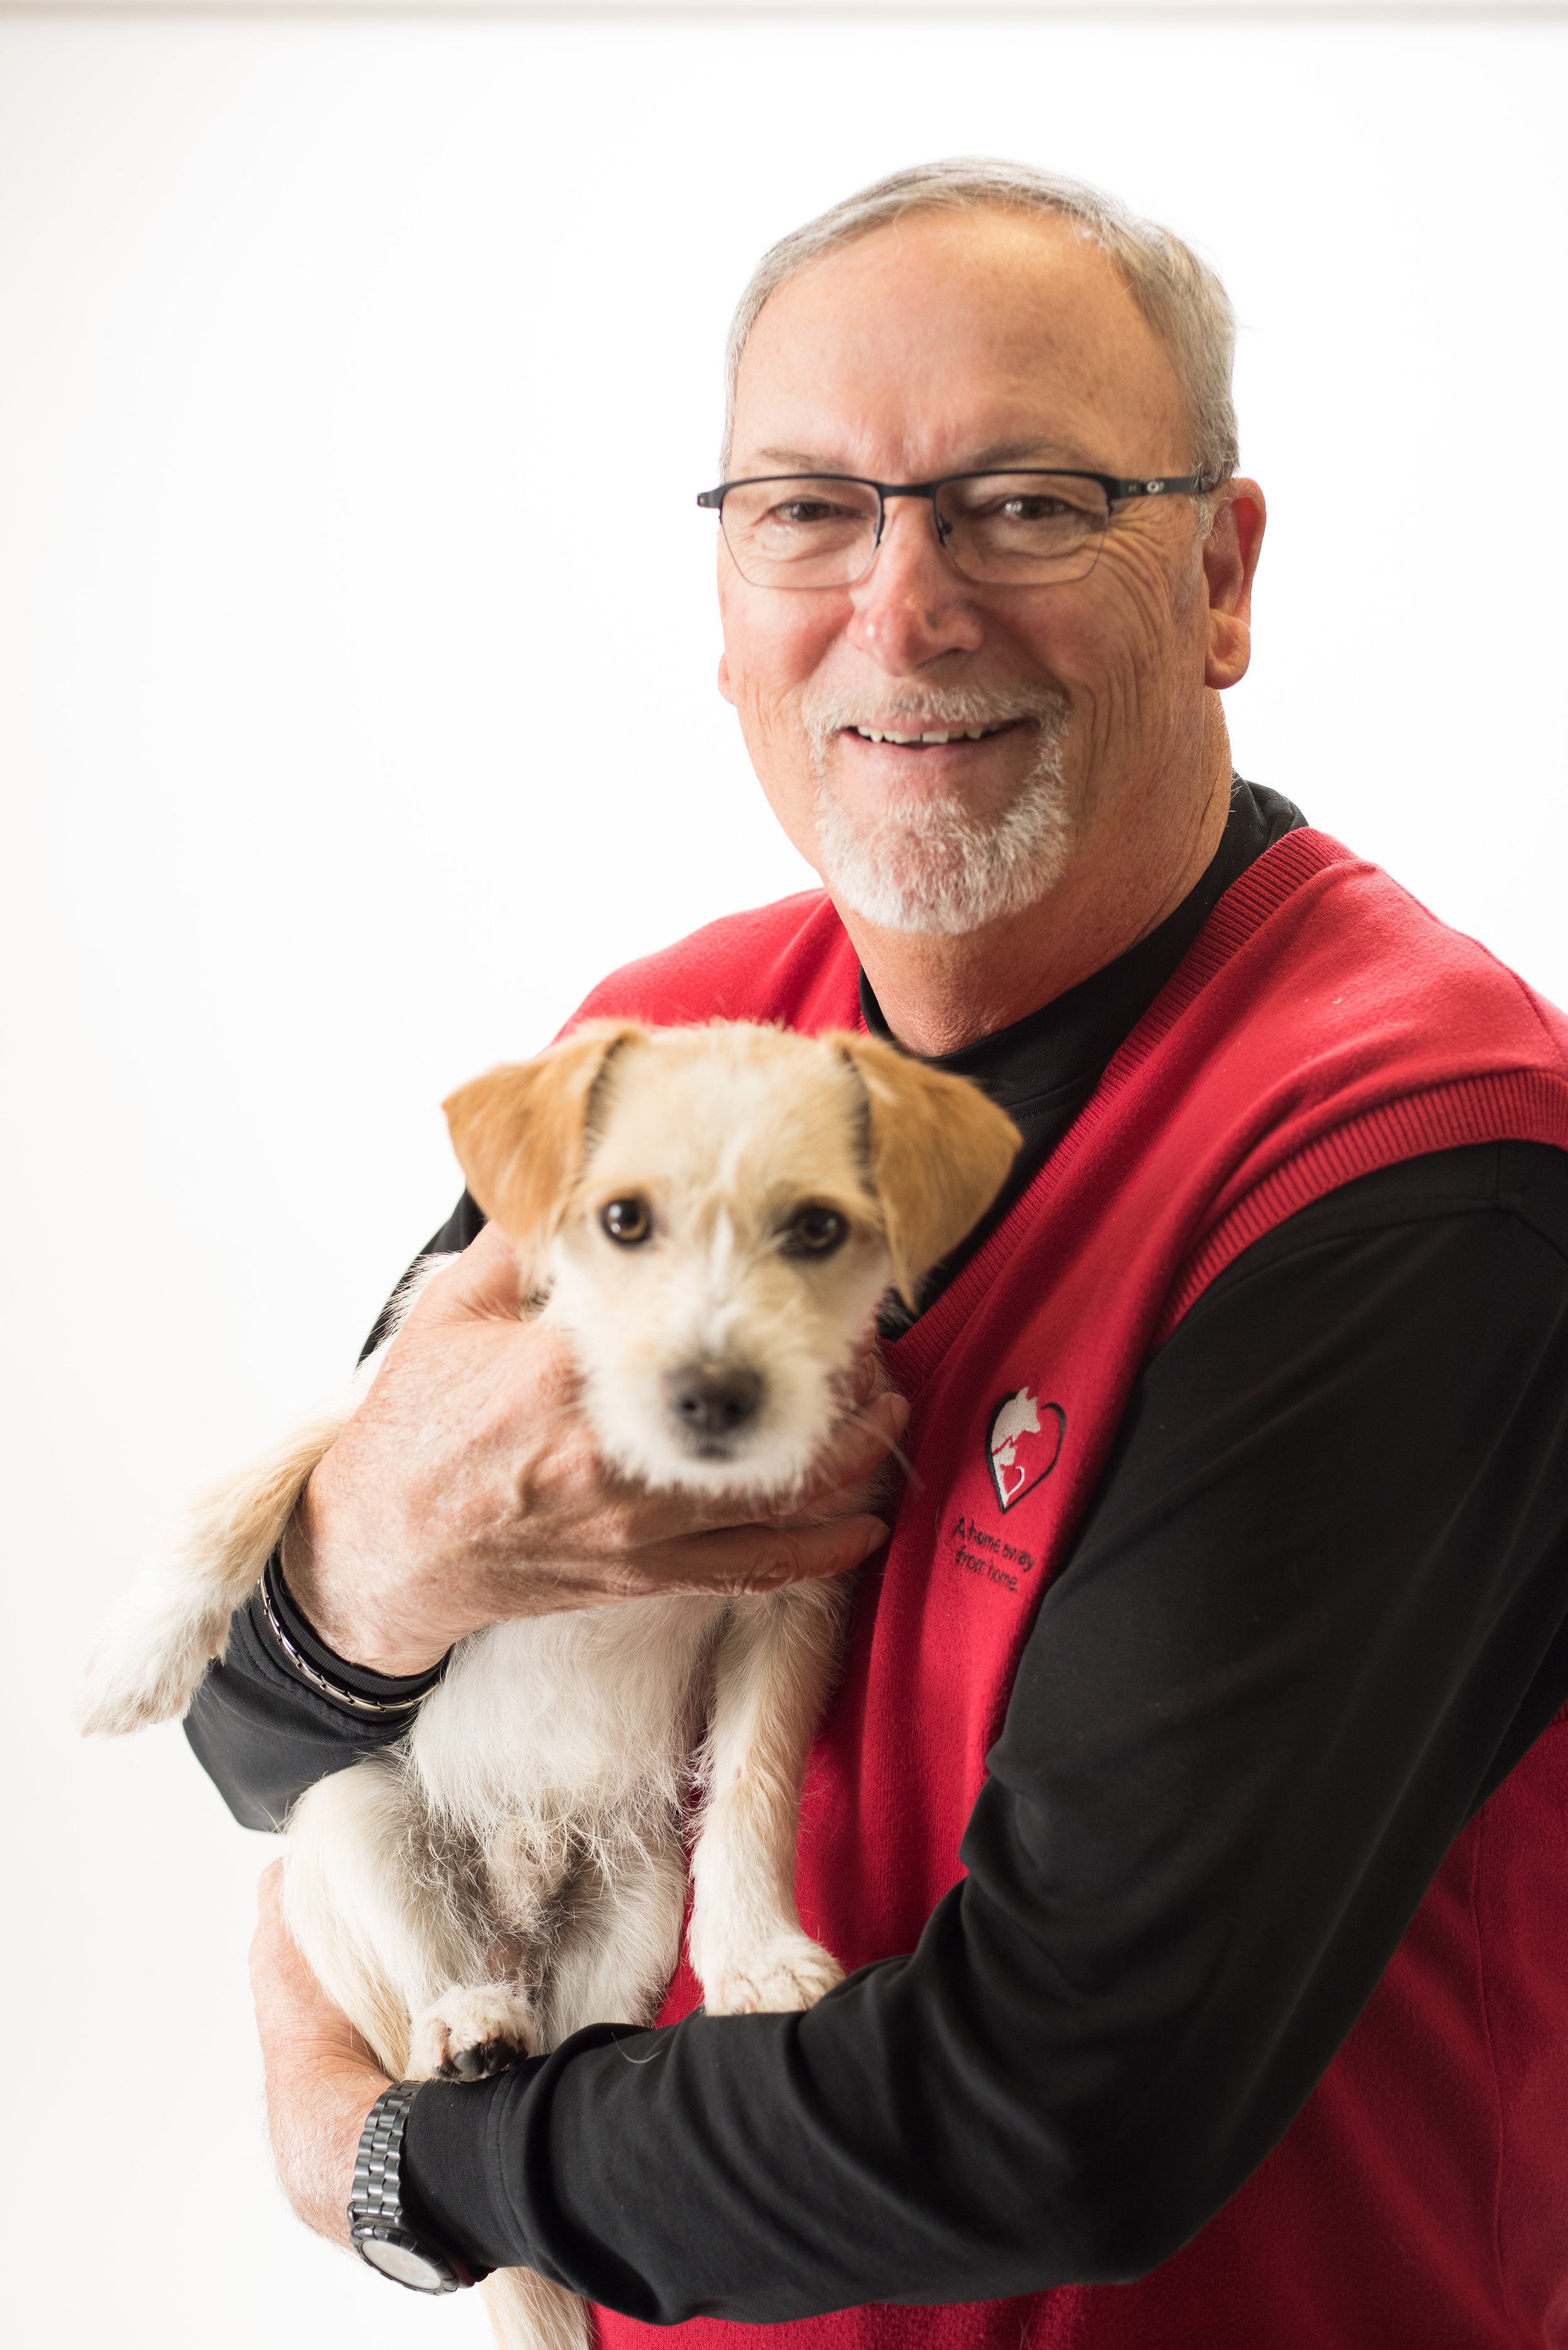 William C Harford, President & CEO Inland Valley Humane Society and SPCA